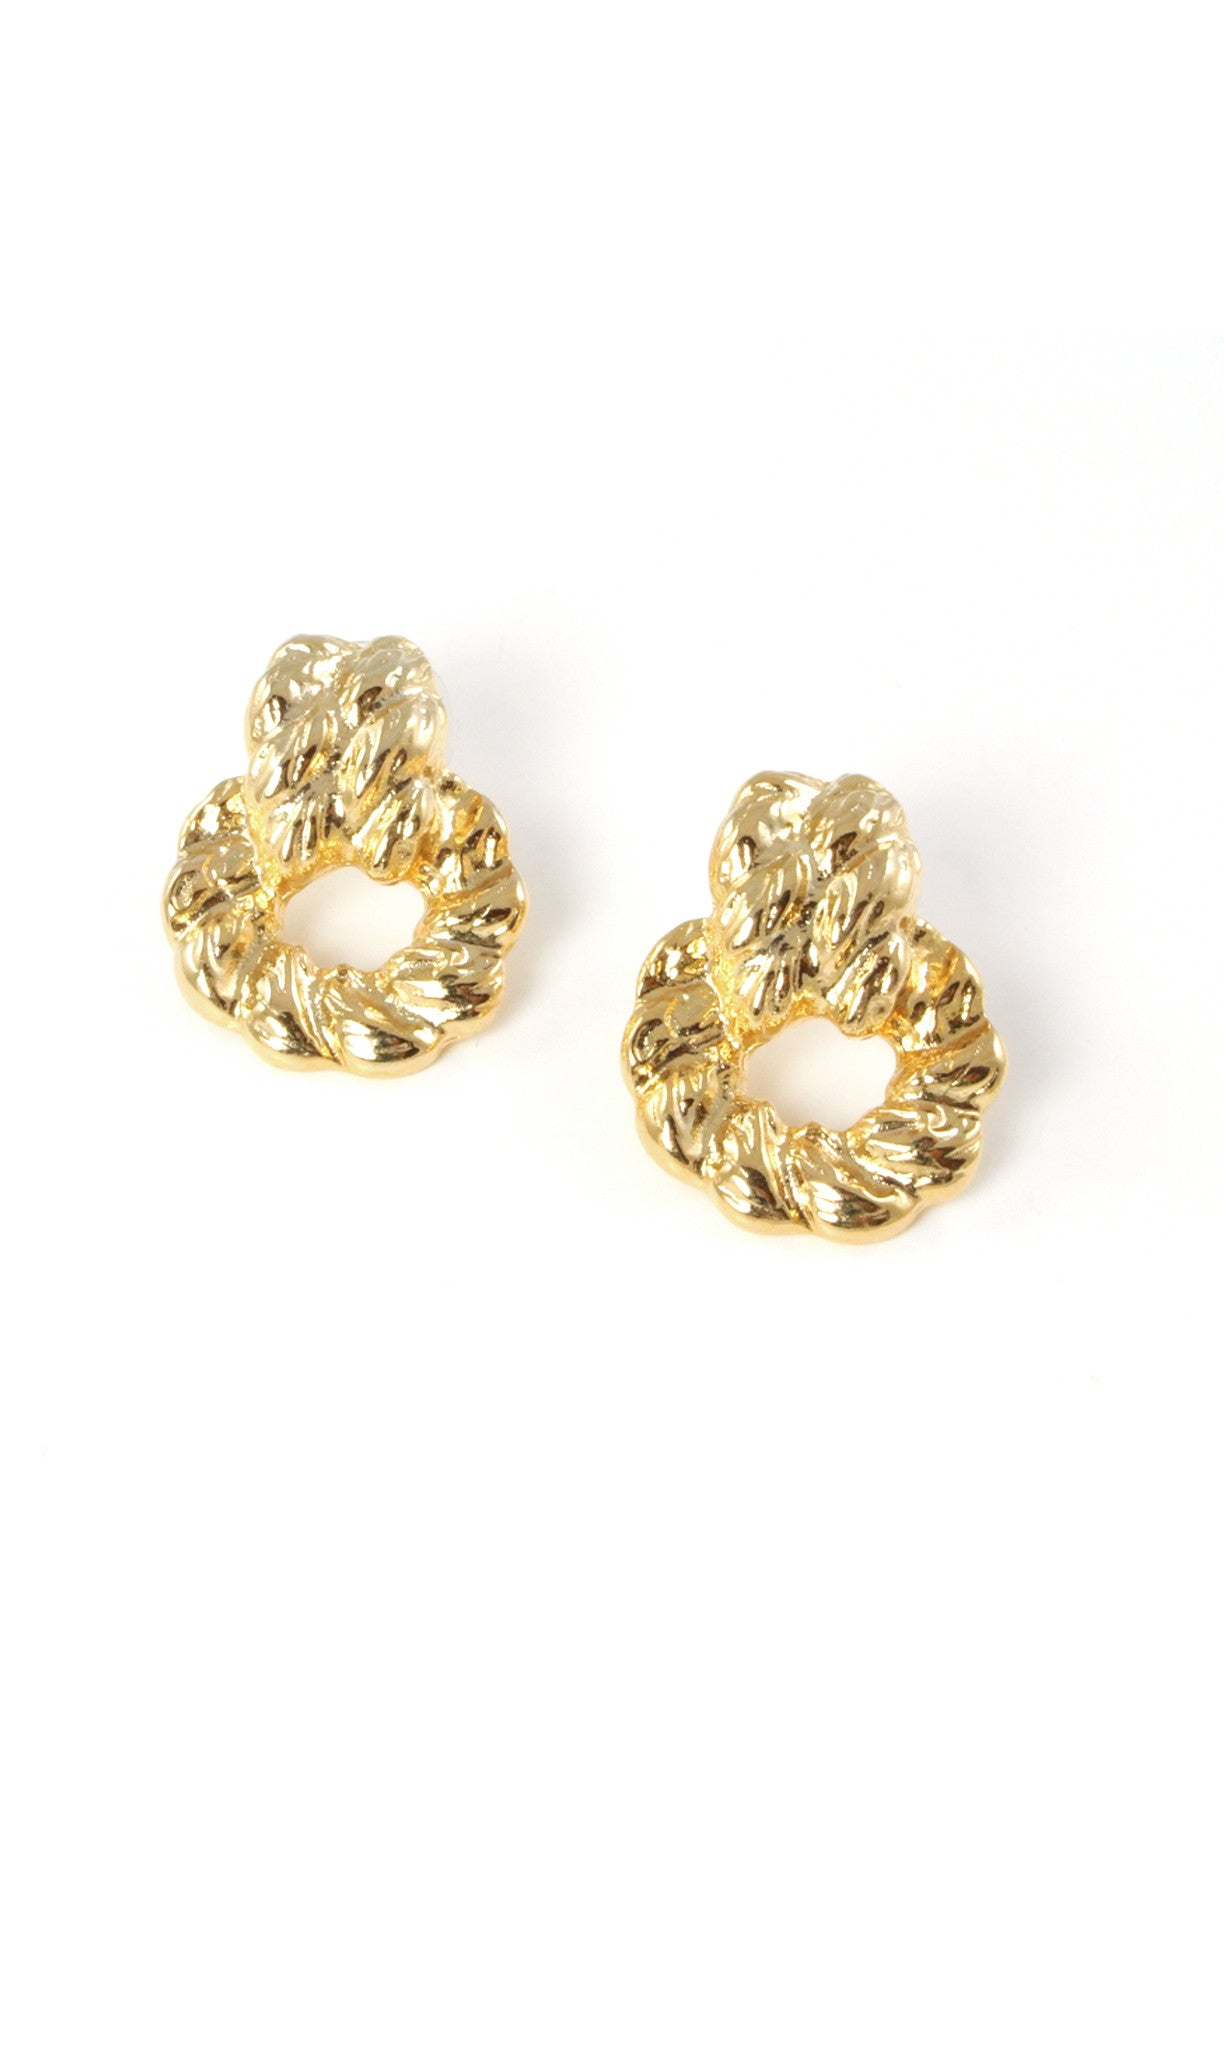 80's__Vintage__Bold Drop Ring Earrings